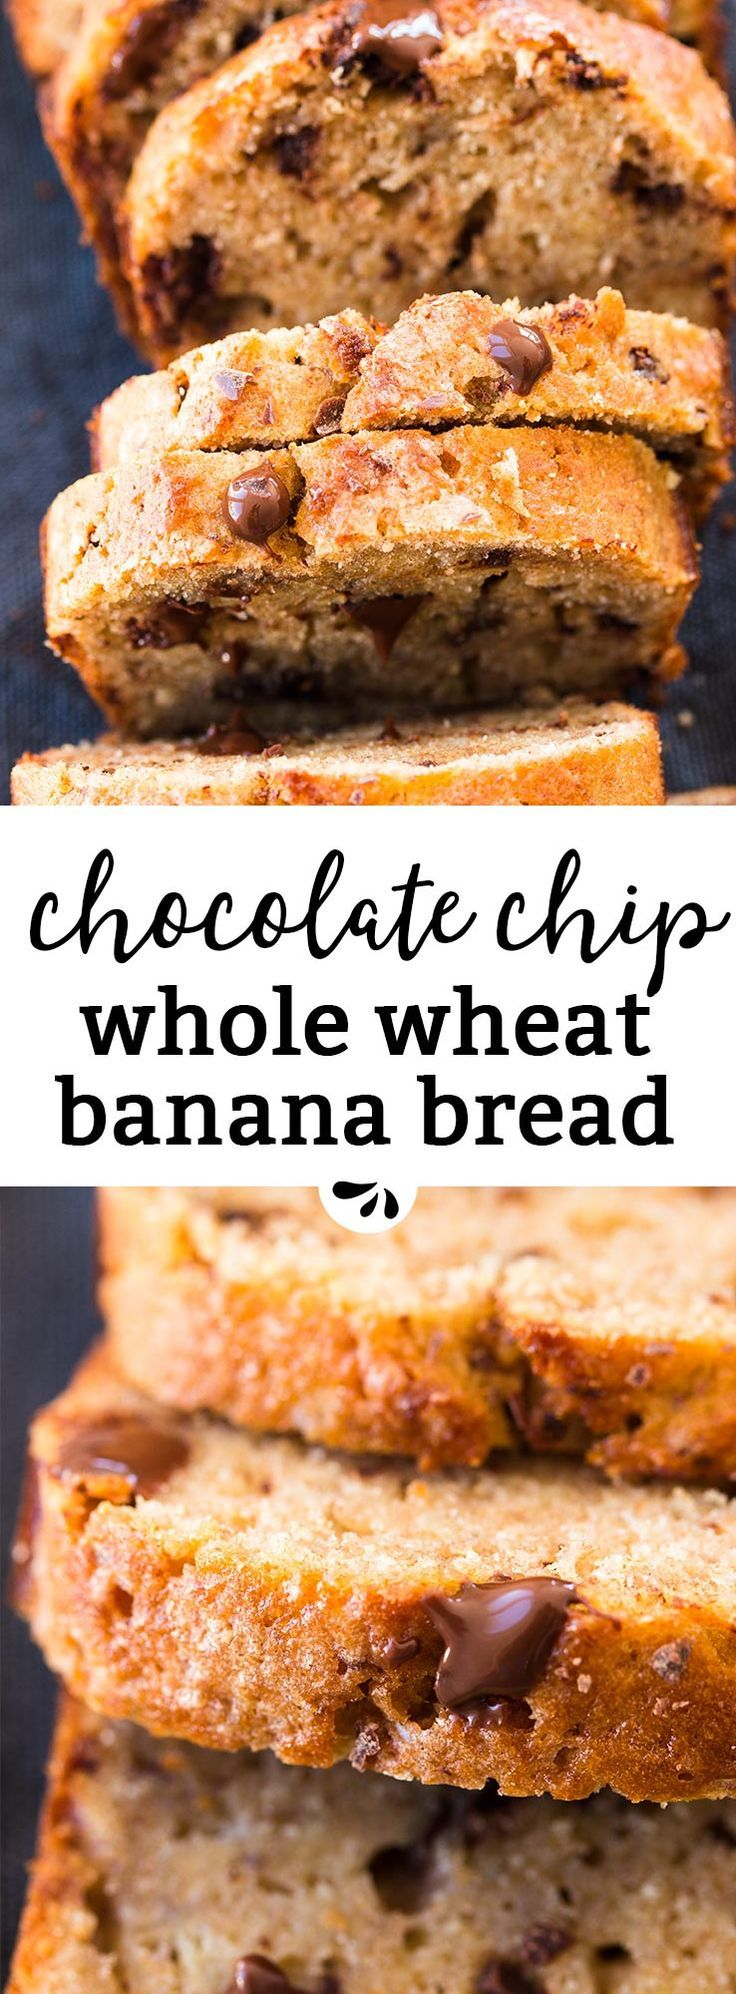 Easy and delicious, this Whole Wheat Chocolate Chip Banana Bread whips up in a single bowl! You can even freeze it to always have a delicious snack on hand. It's made with Greek yogurt, oil and less sugar than traditional banana bread recipes. Perfect for